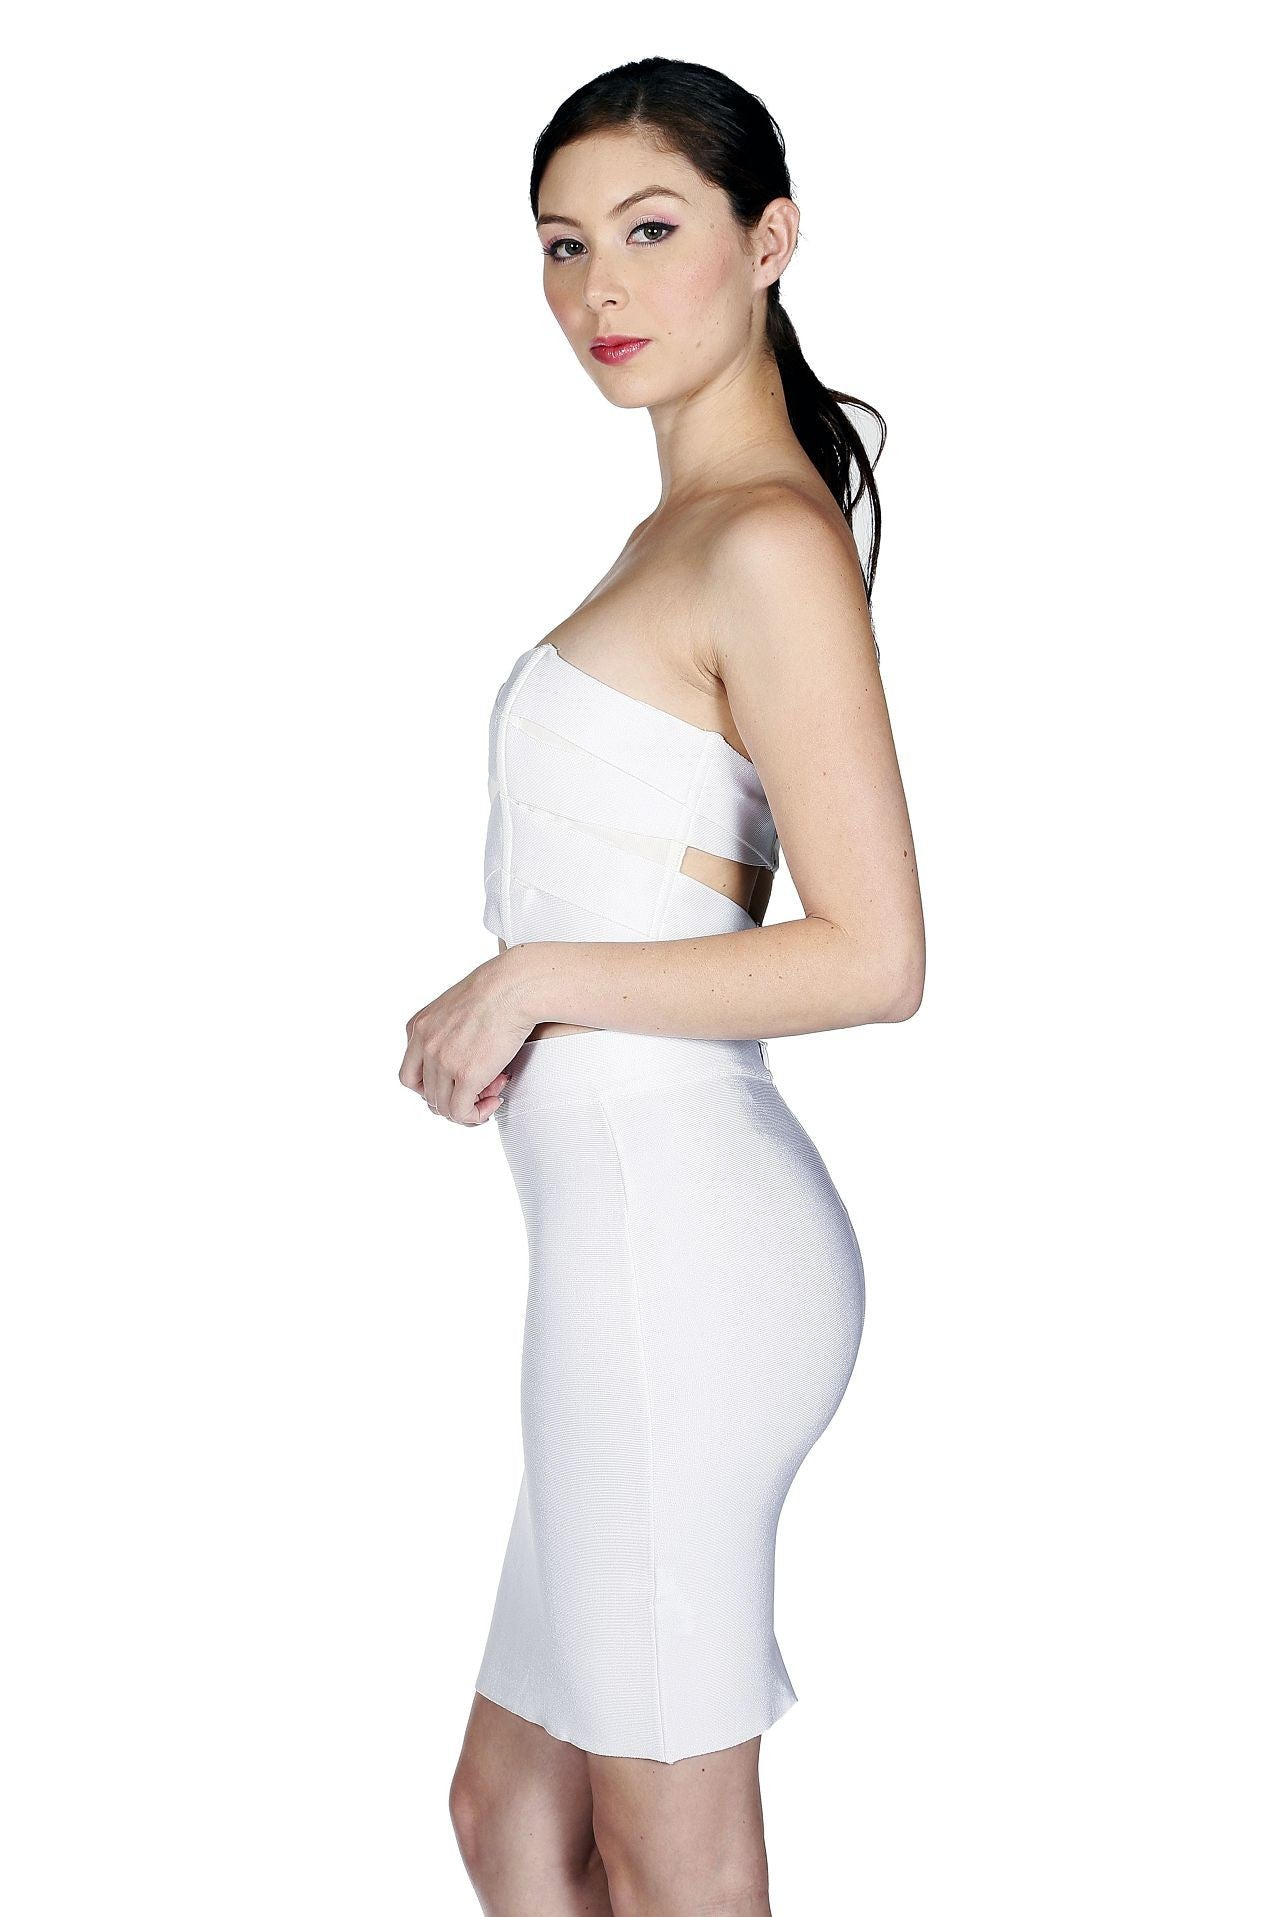 Daisy Two-Piece bandage Dress - waist trainer, dress - waist trainer, swancoast.com ann chery,